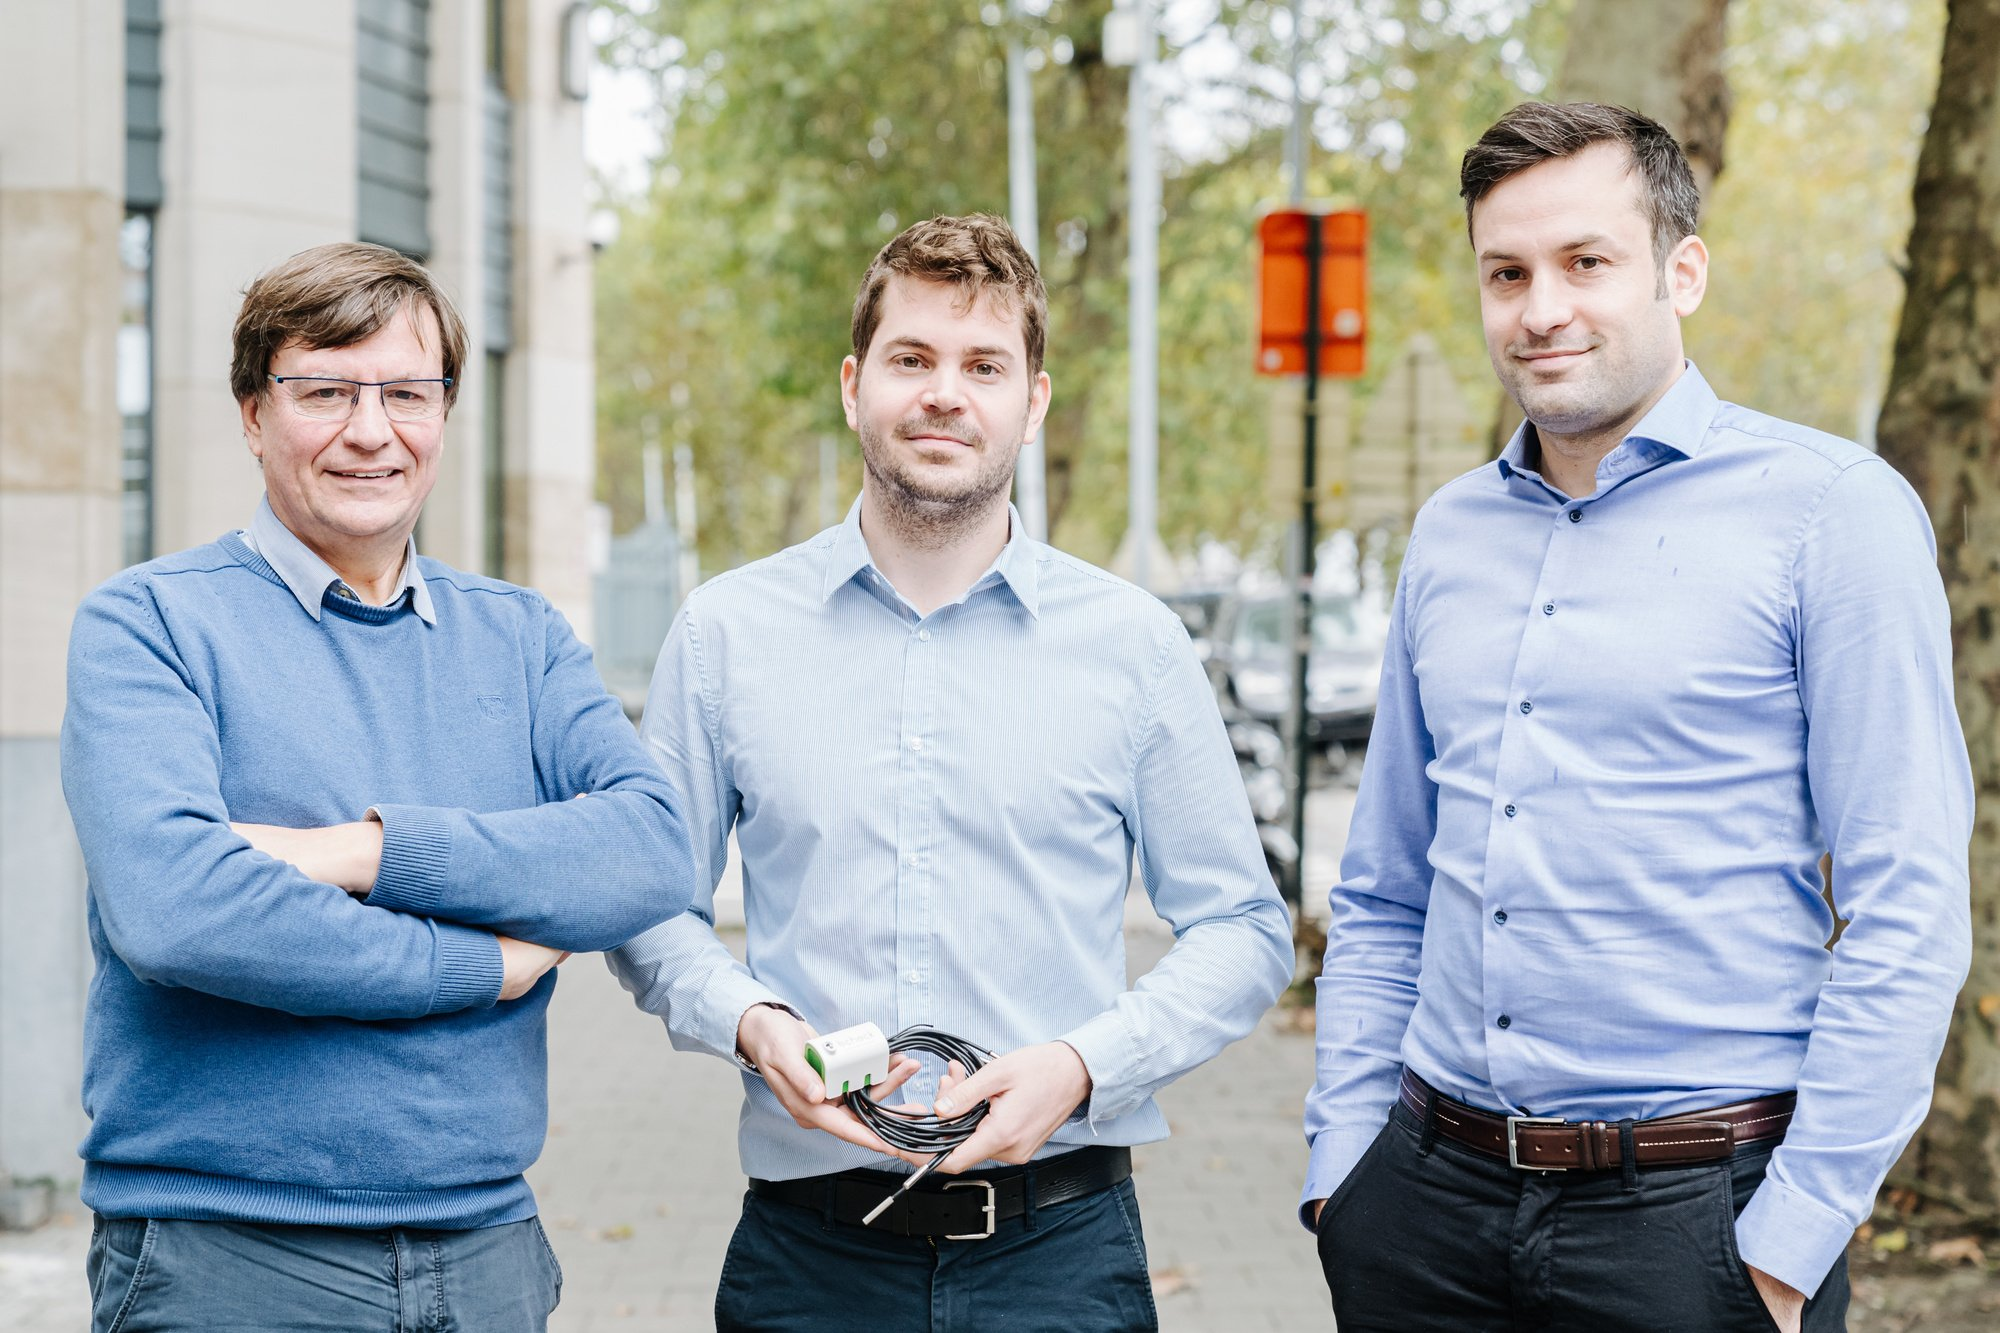 Het team achter de start-up, vlnr: Eric Dirix, Pieter Dirix en CEO en co-founder Jacques Bolzer., Bcheck